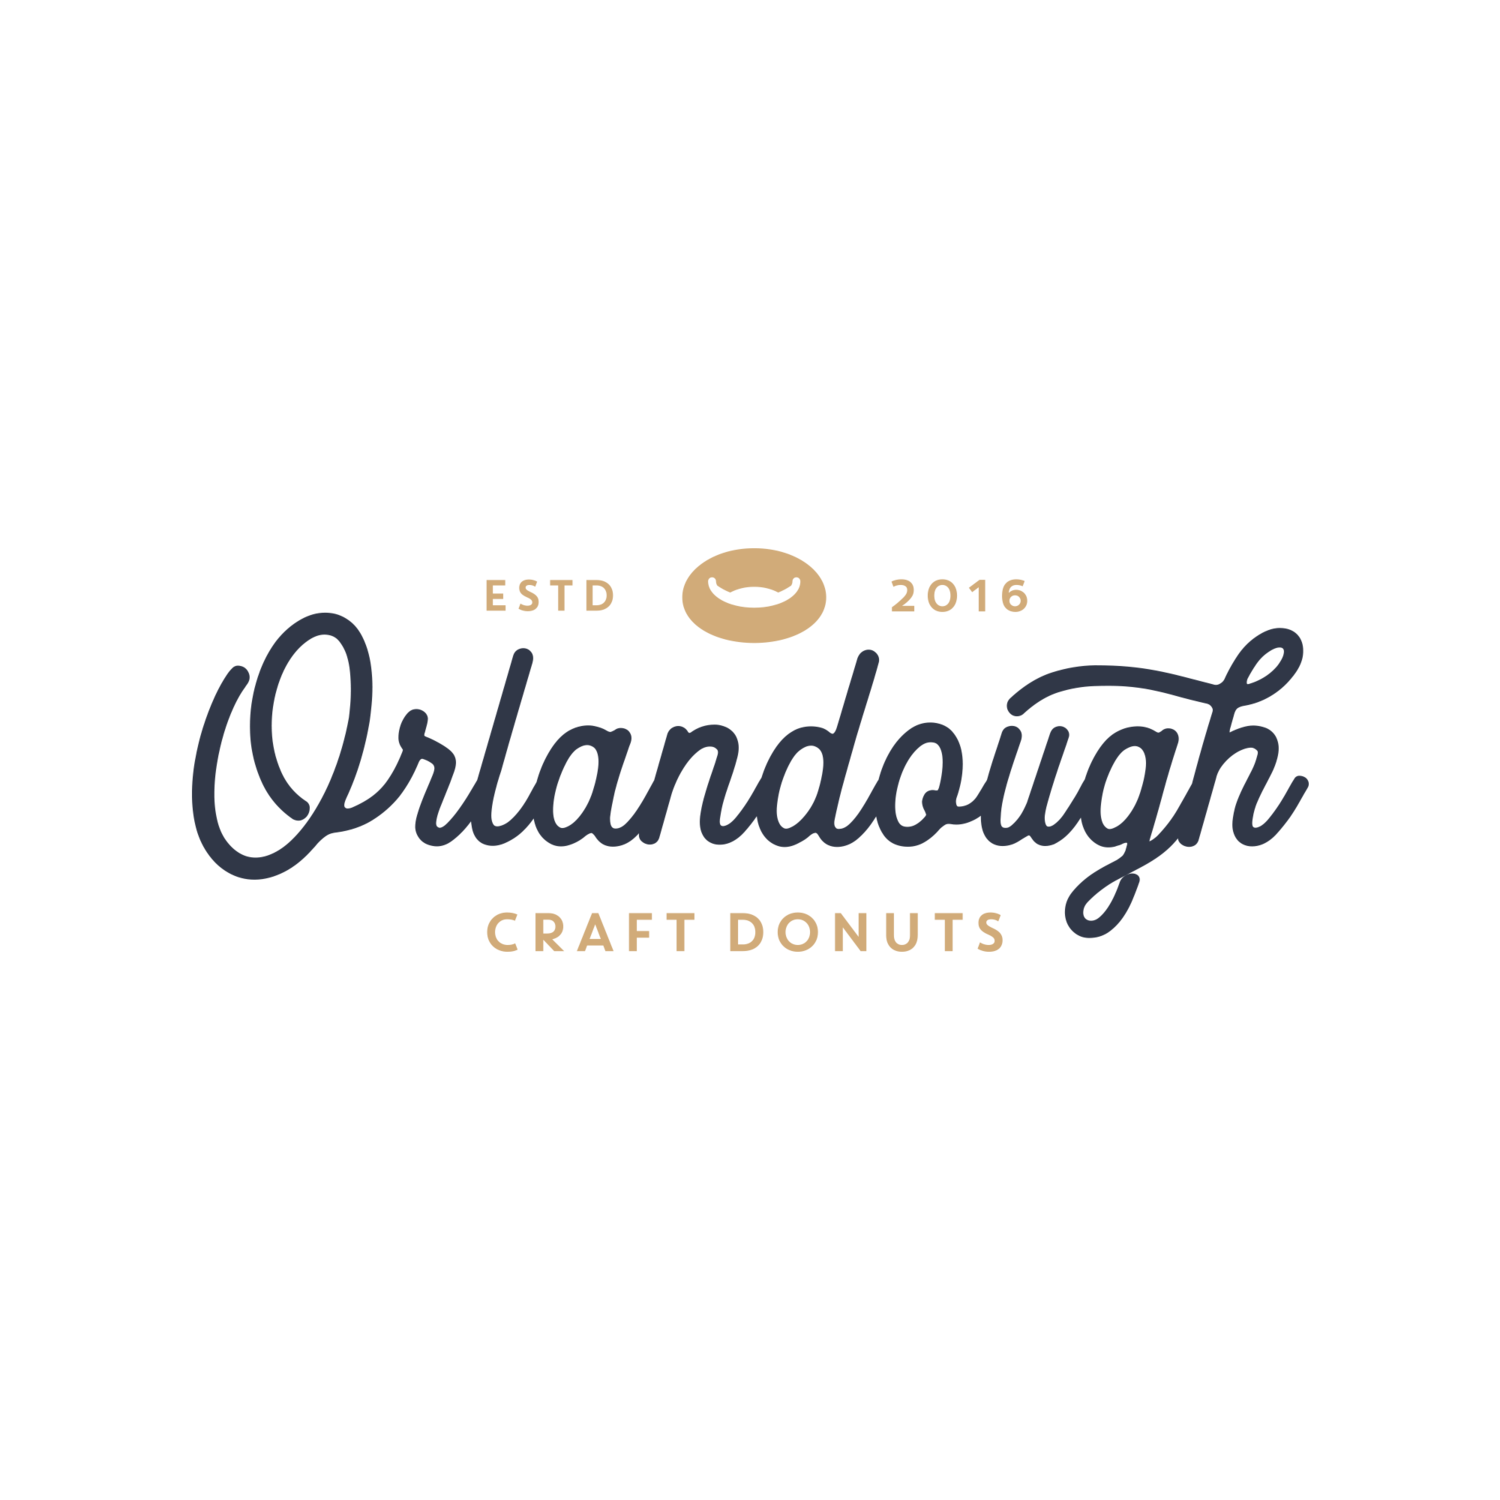 Orlandough- Craft Orlando Donuts